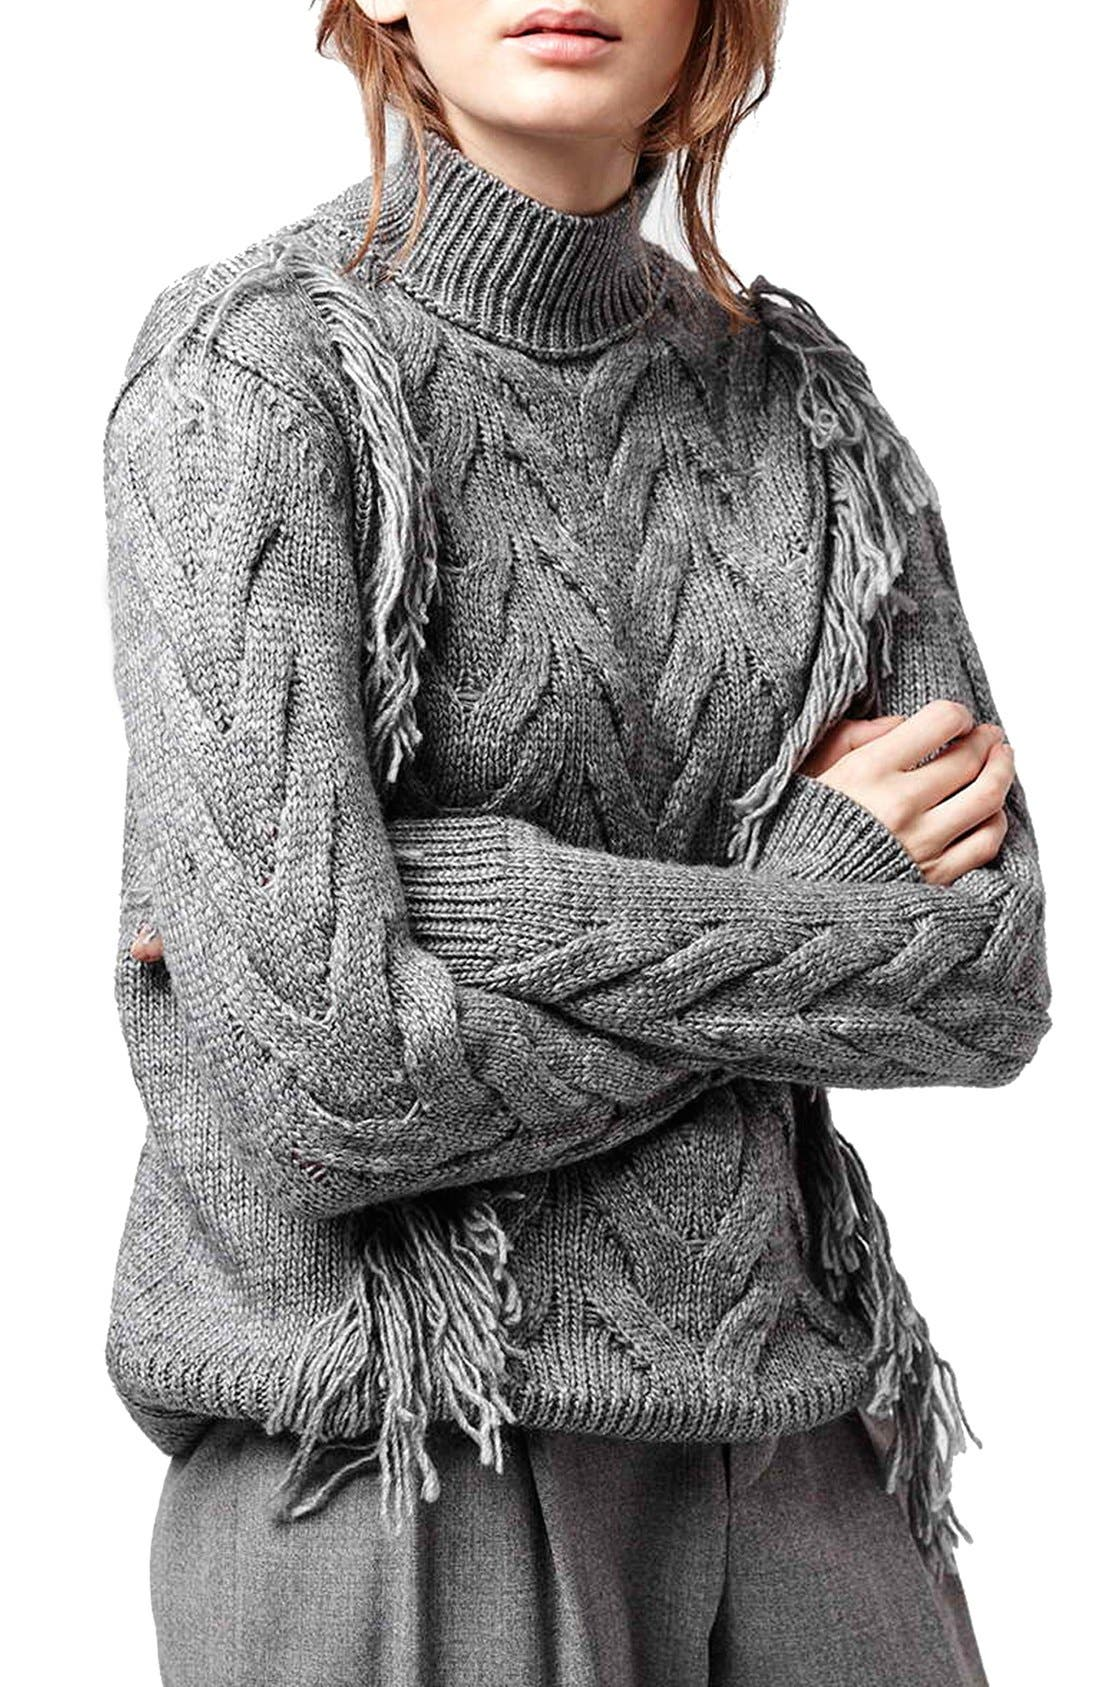 Alternate Image 1 Selected - Topshop Fringe Cable Knit Sweater